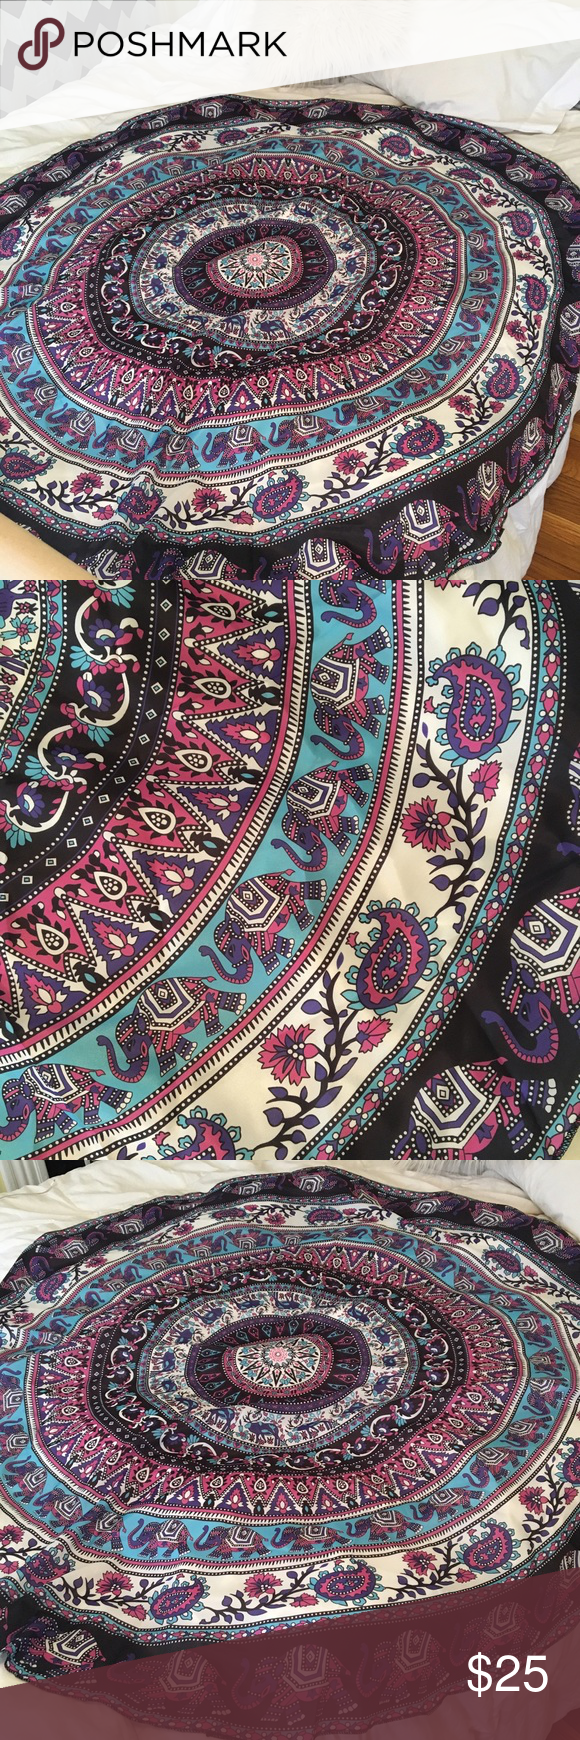 Round Purple Elephant Tapestry Large round tapestry with purple elephant design! Perfect to hang above your bed or use as a blanket for a picnic! I've seen these advertised as beach towels but this is not towel material. Urban Outfitters Accessories